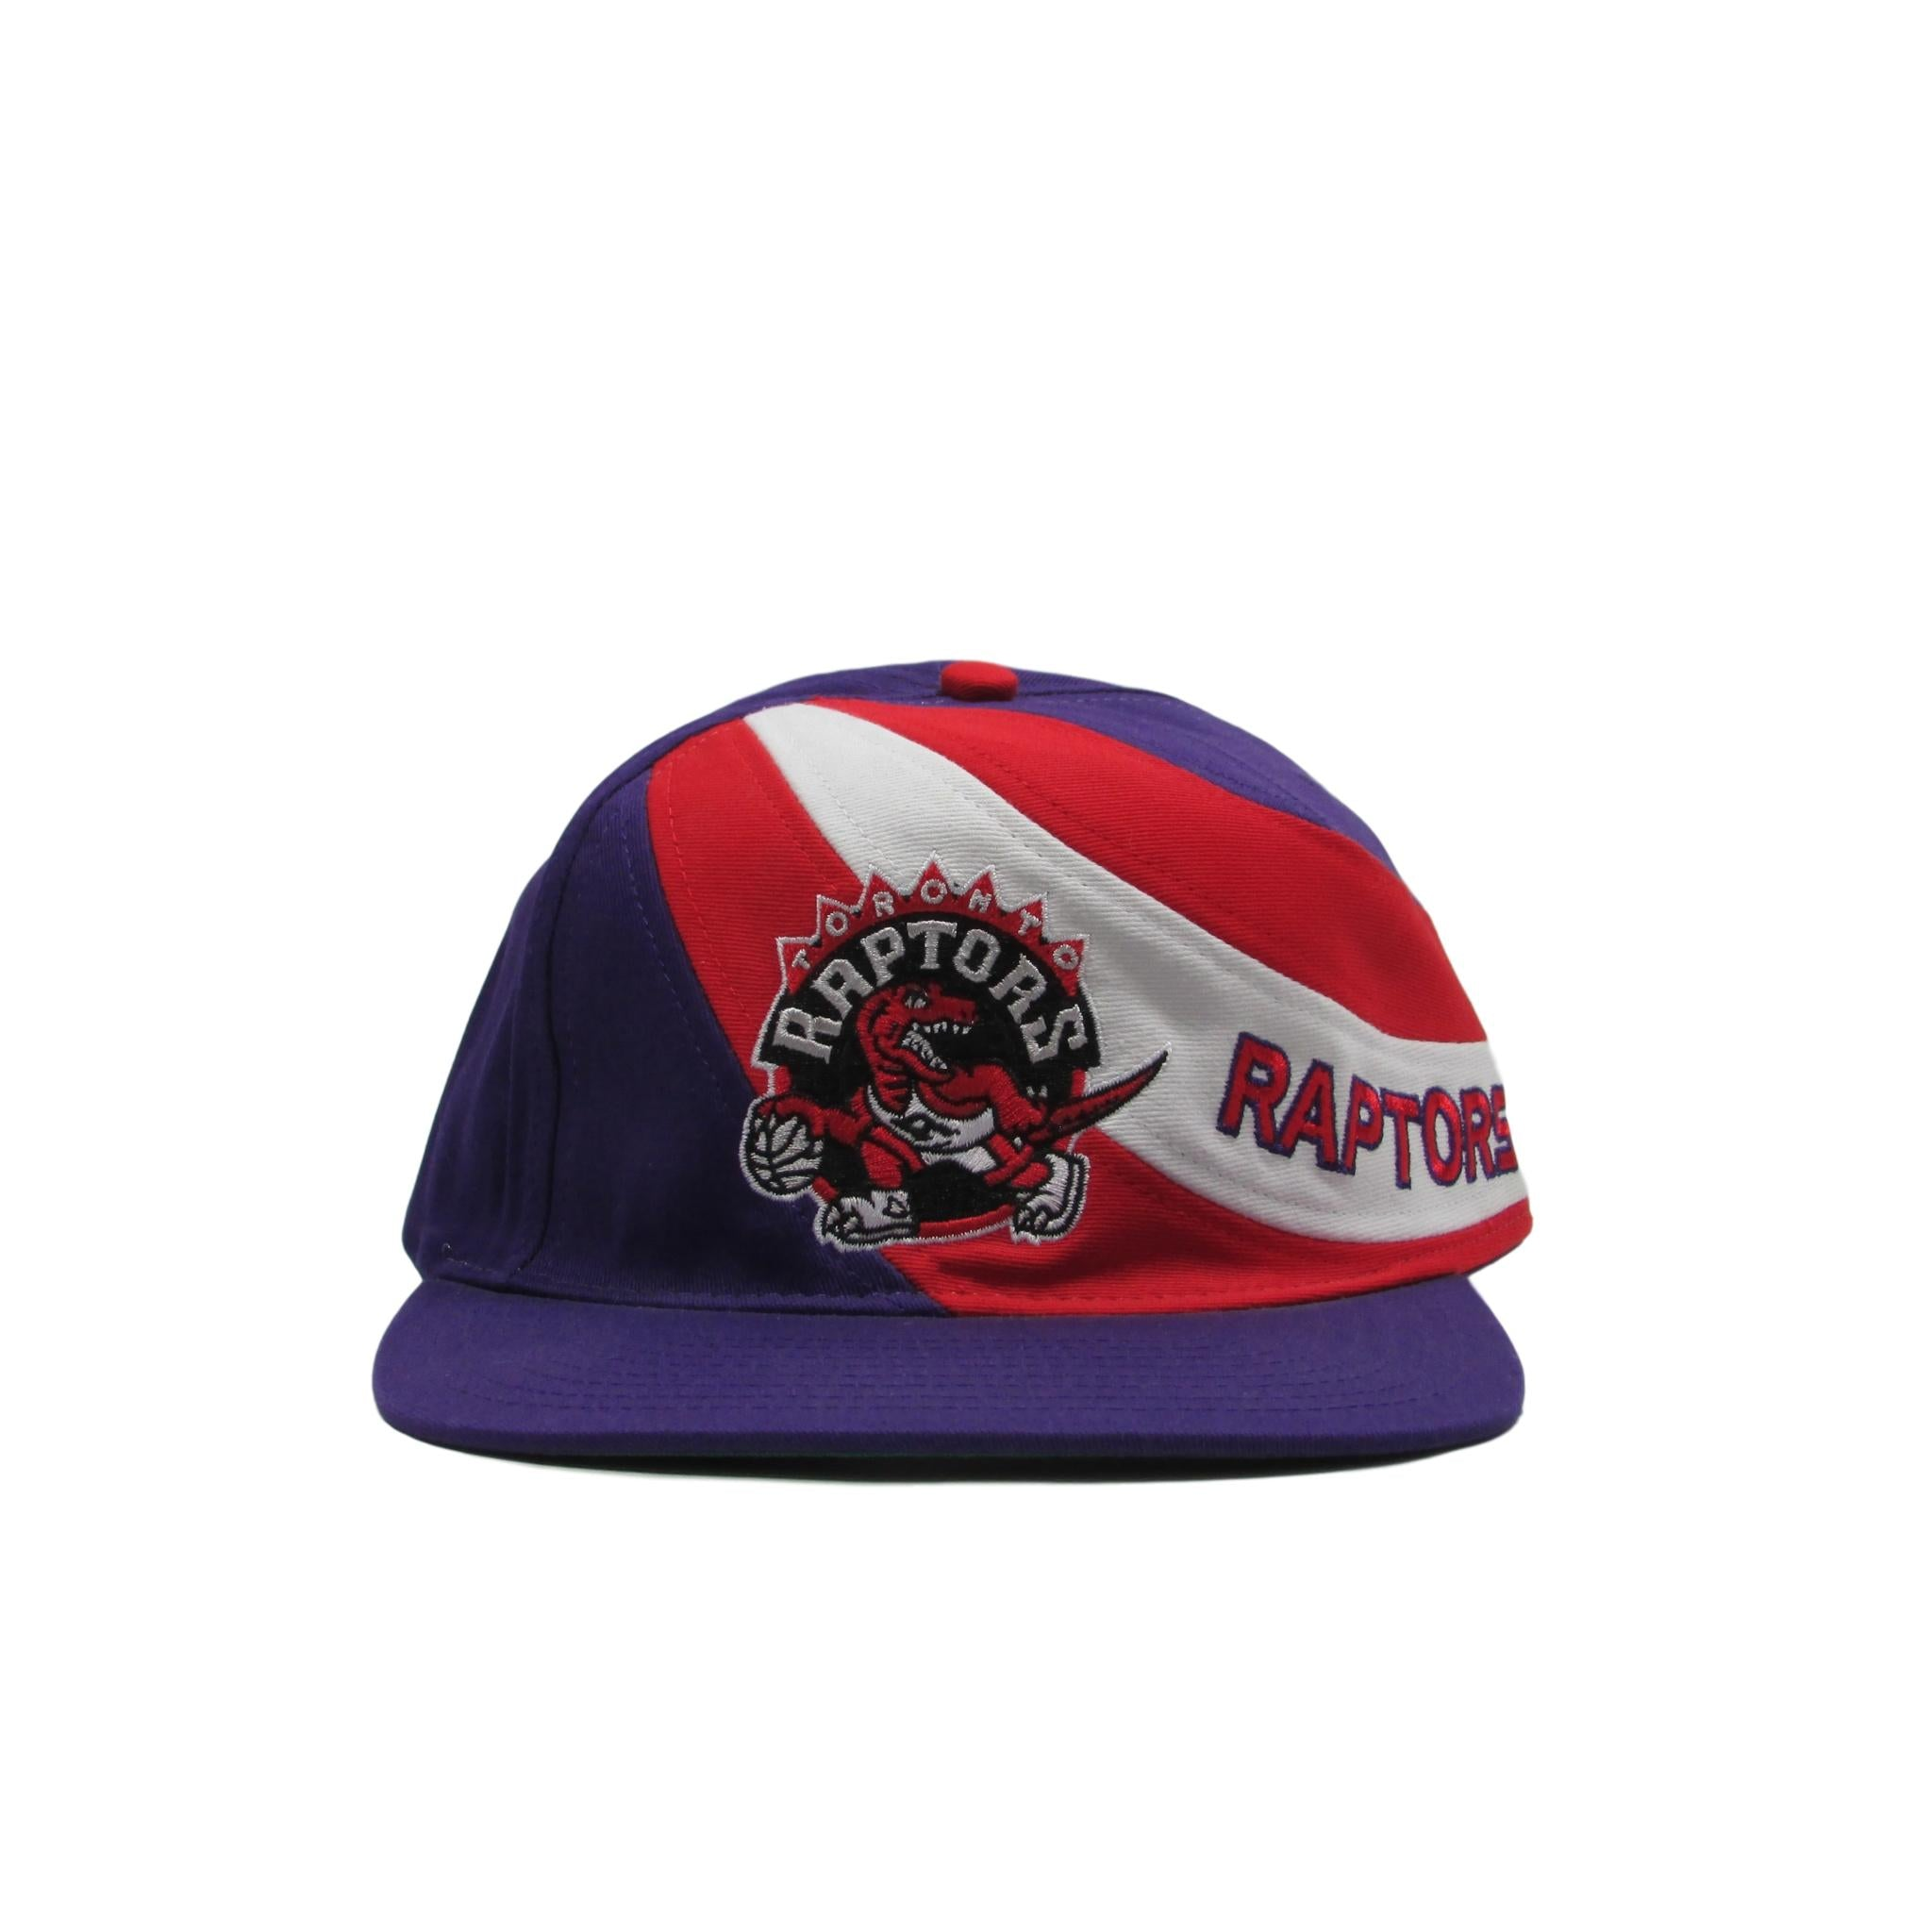 Toronto Raptors Side Swoop Basketball Snabpack Hat Adidas